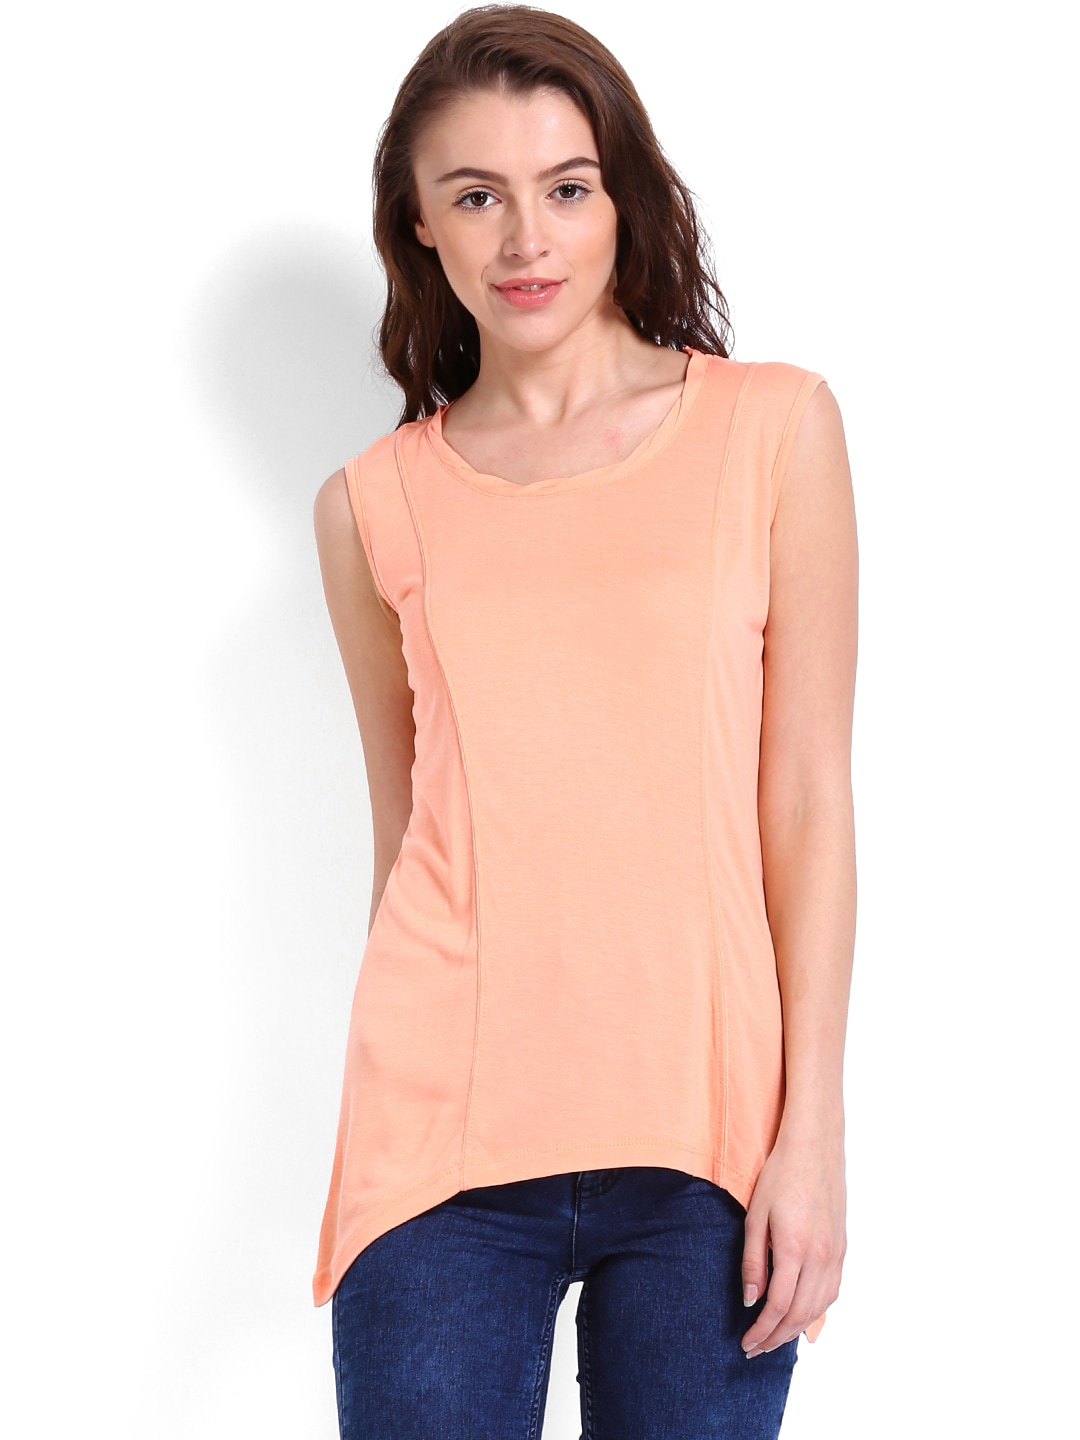 Free shipping and returns on Women's Pink Tops at cpdlp9wivh506.ga